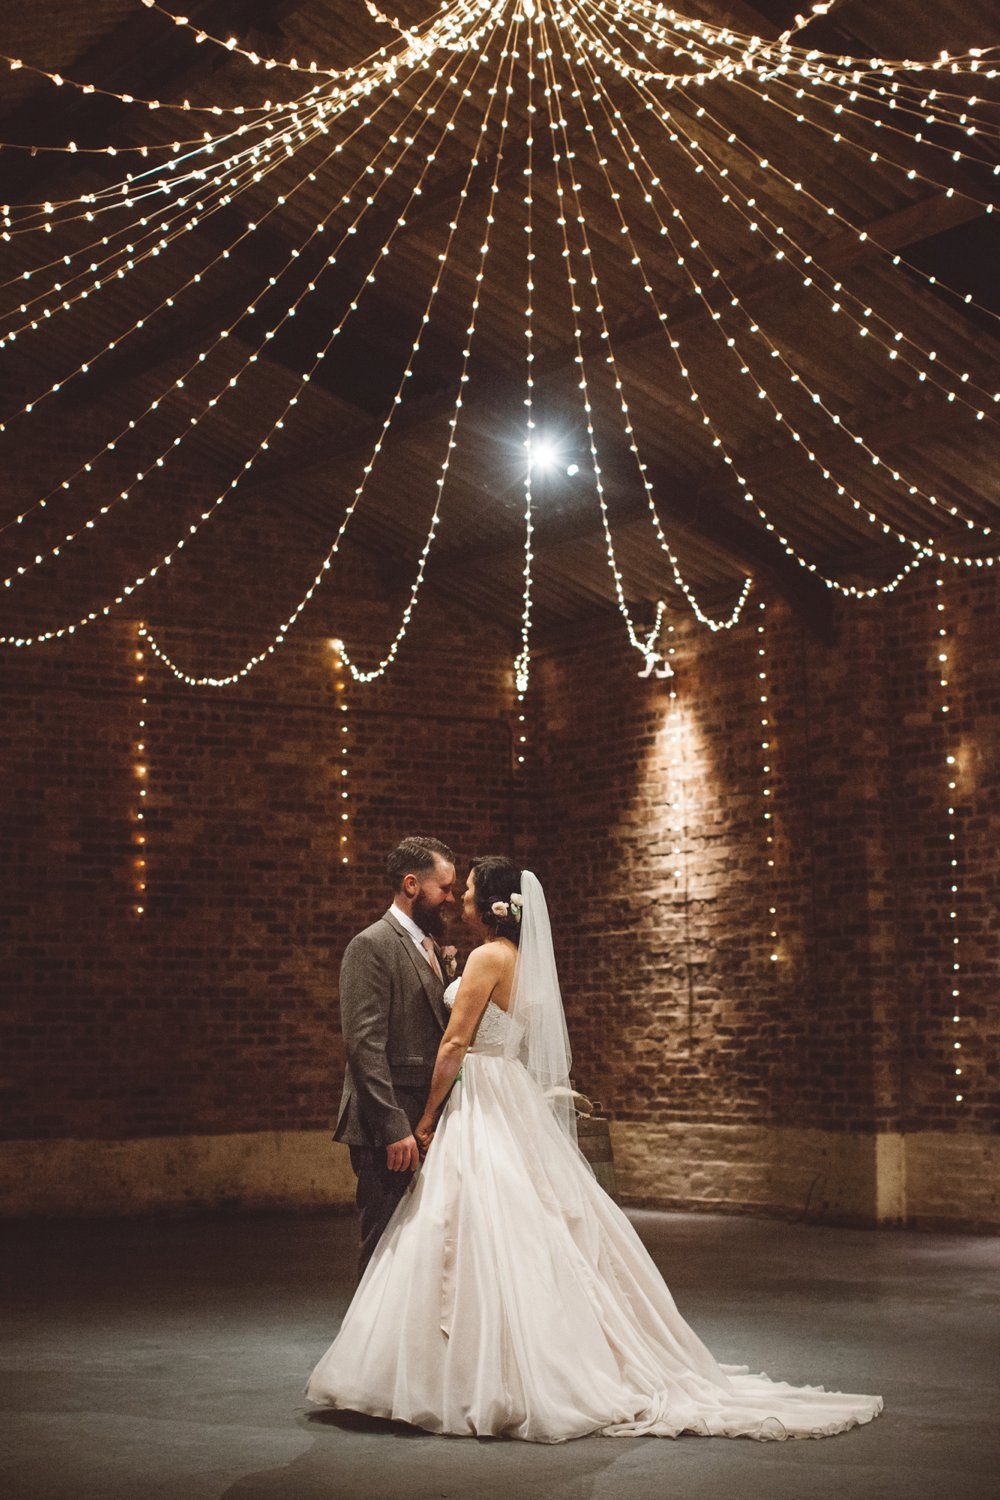 How To Have A Stylish High Street Wedding - ROCK MY ...